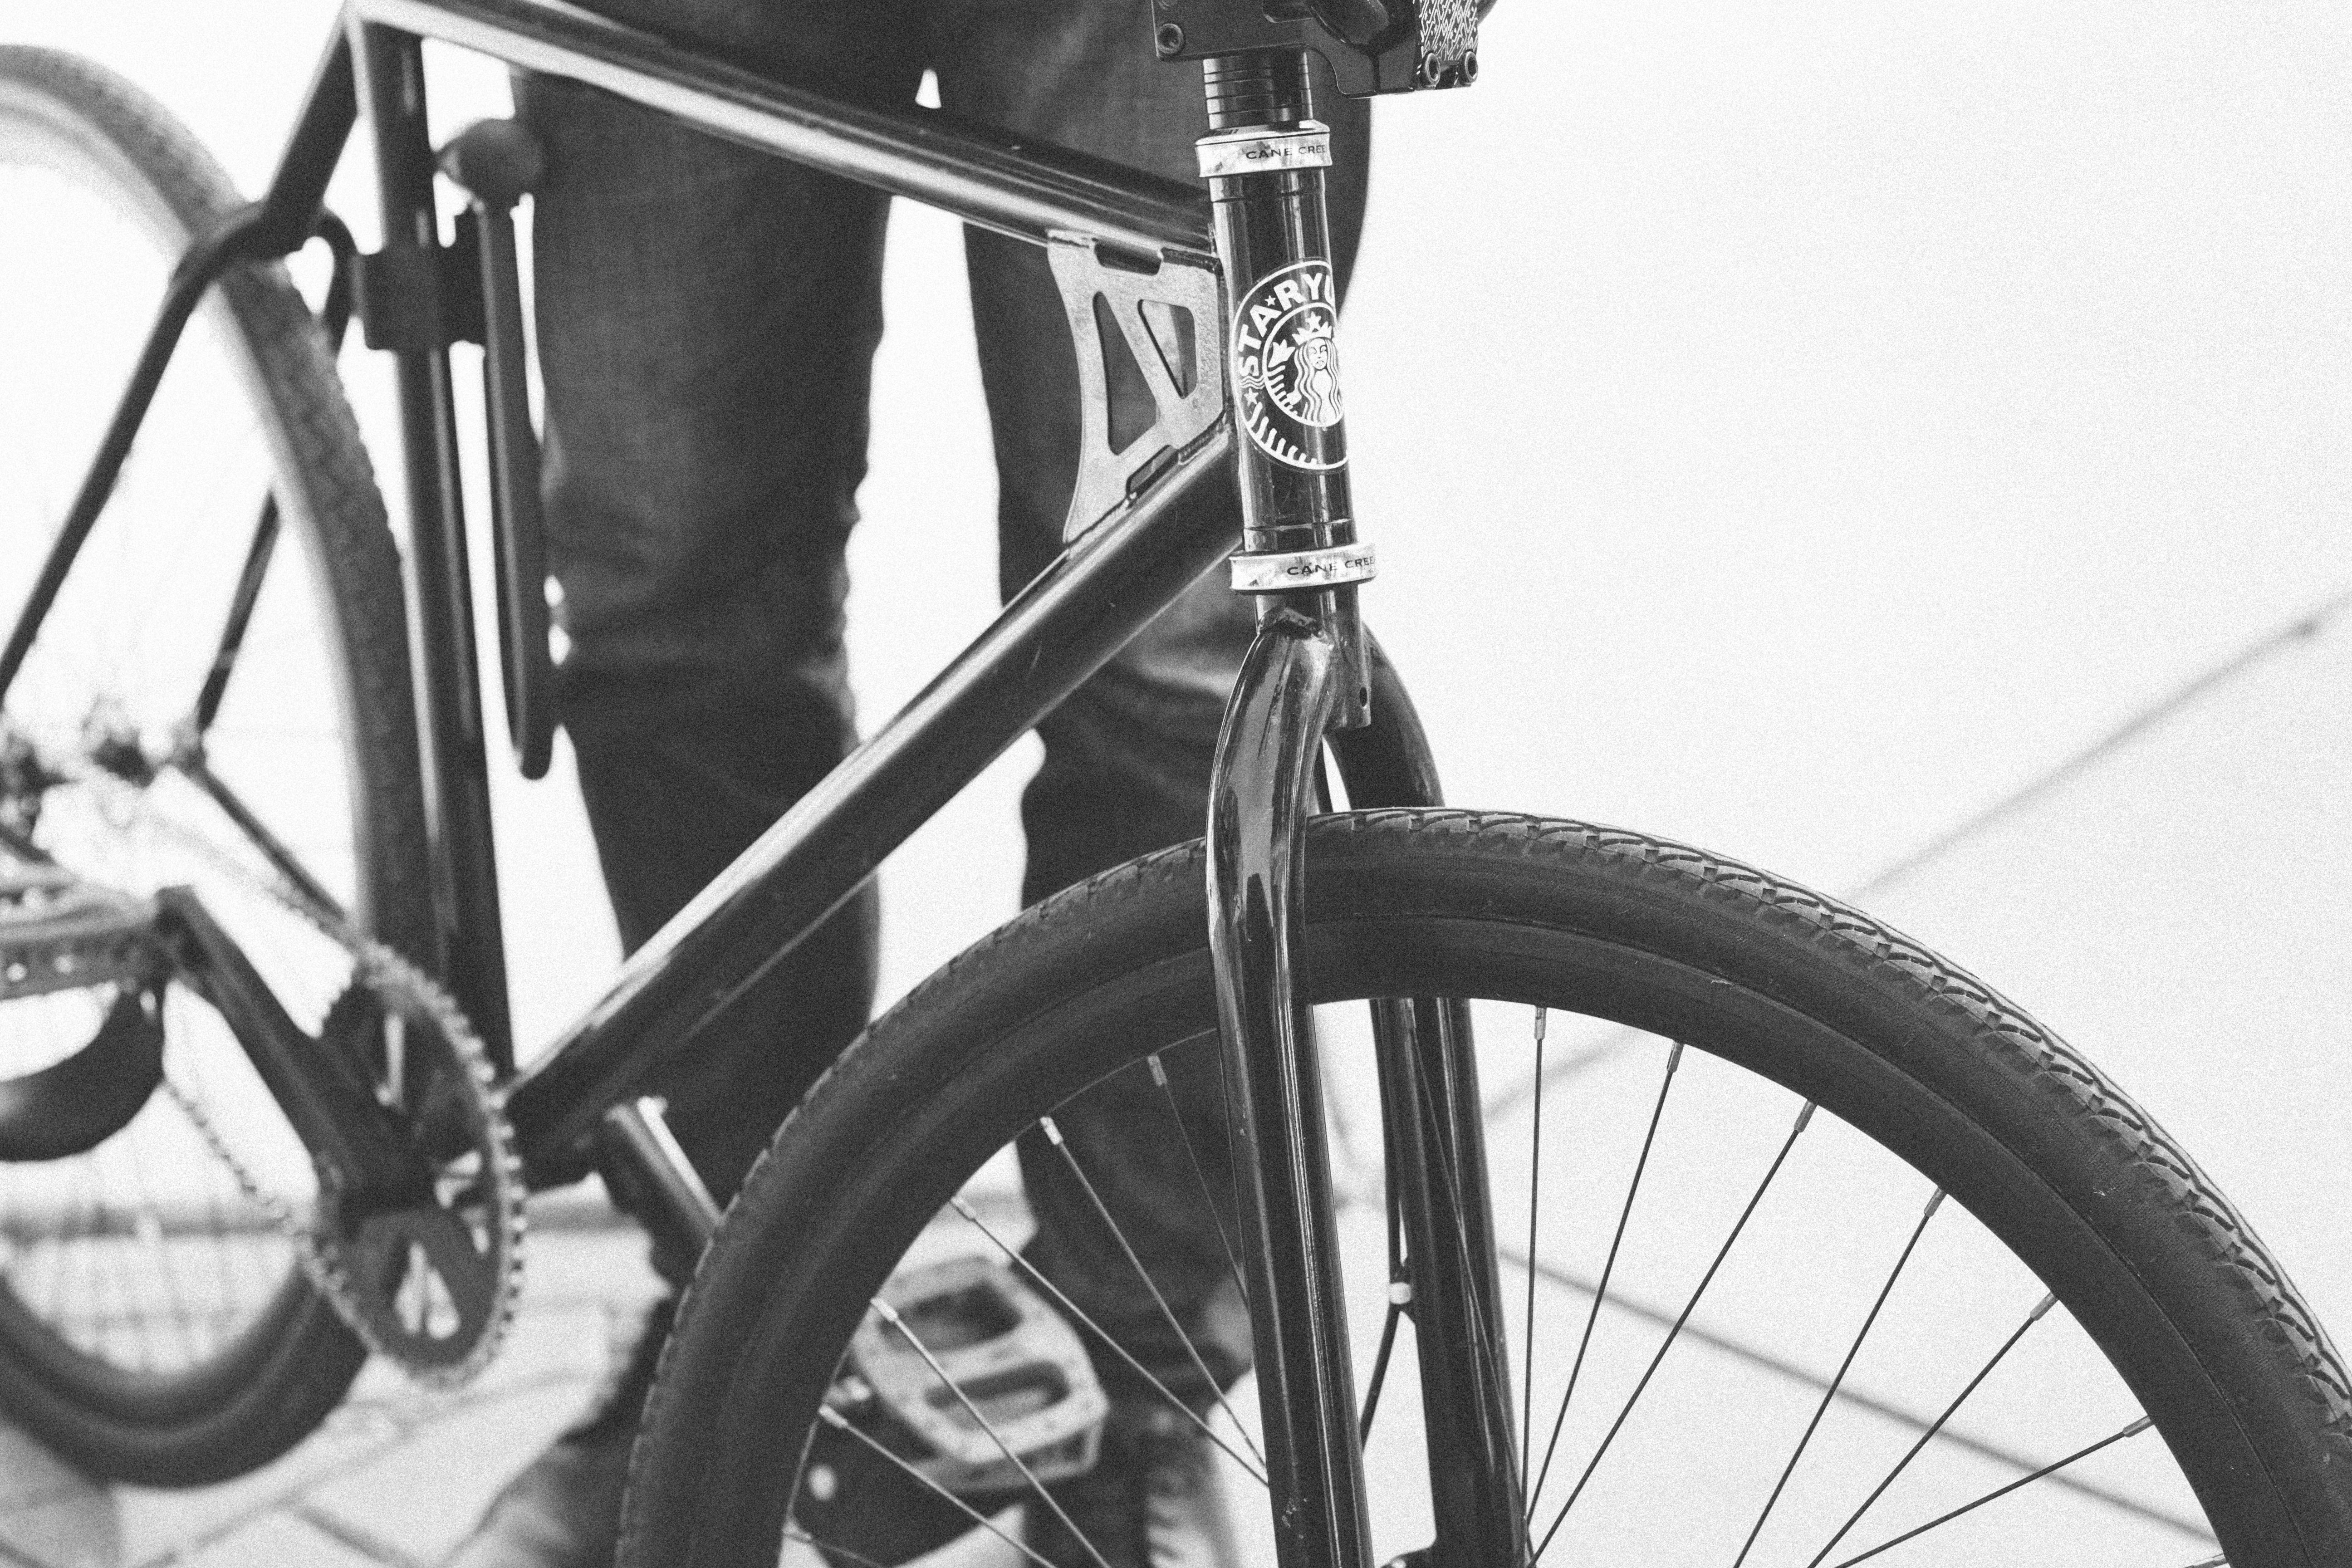 Black and white close up shot of bike and person's legs